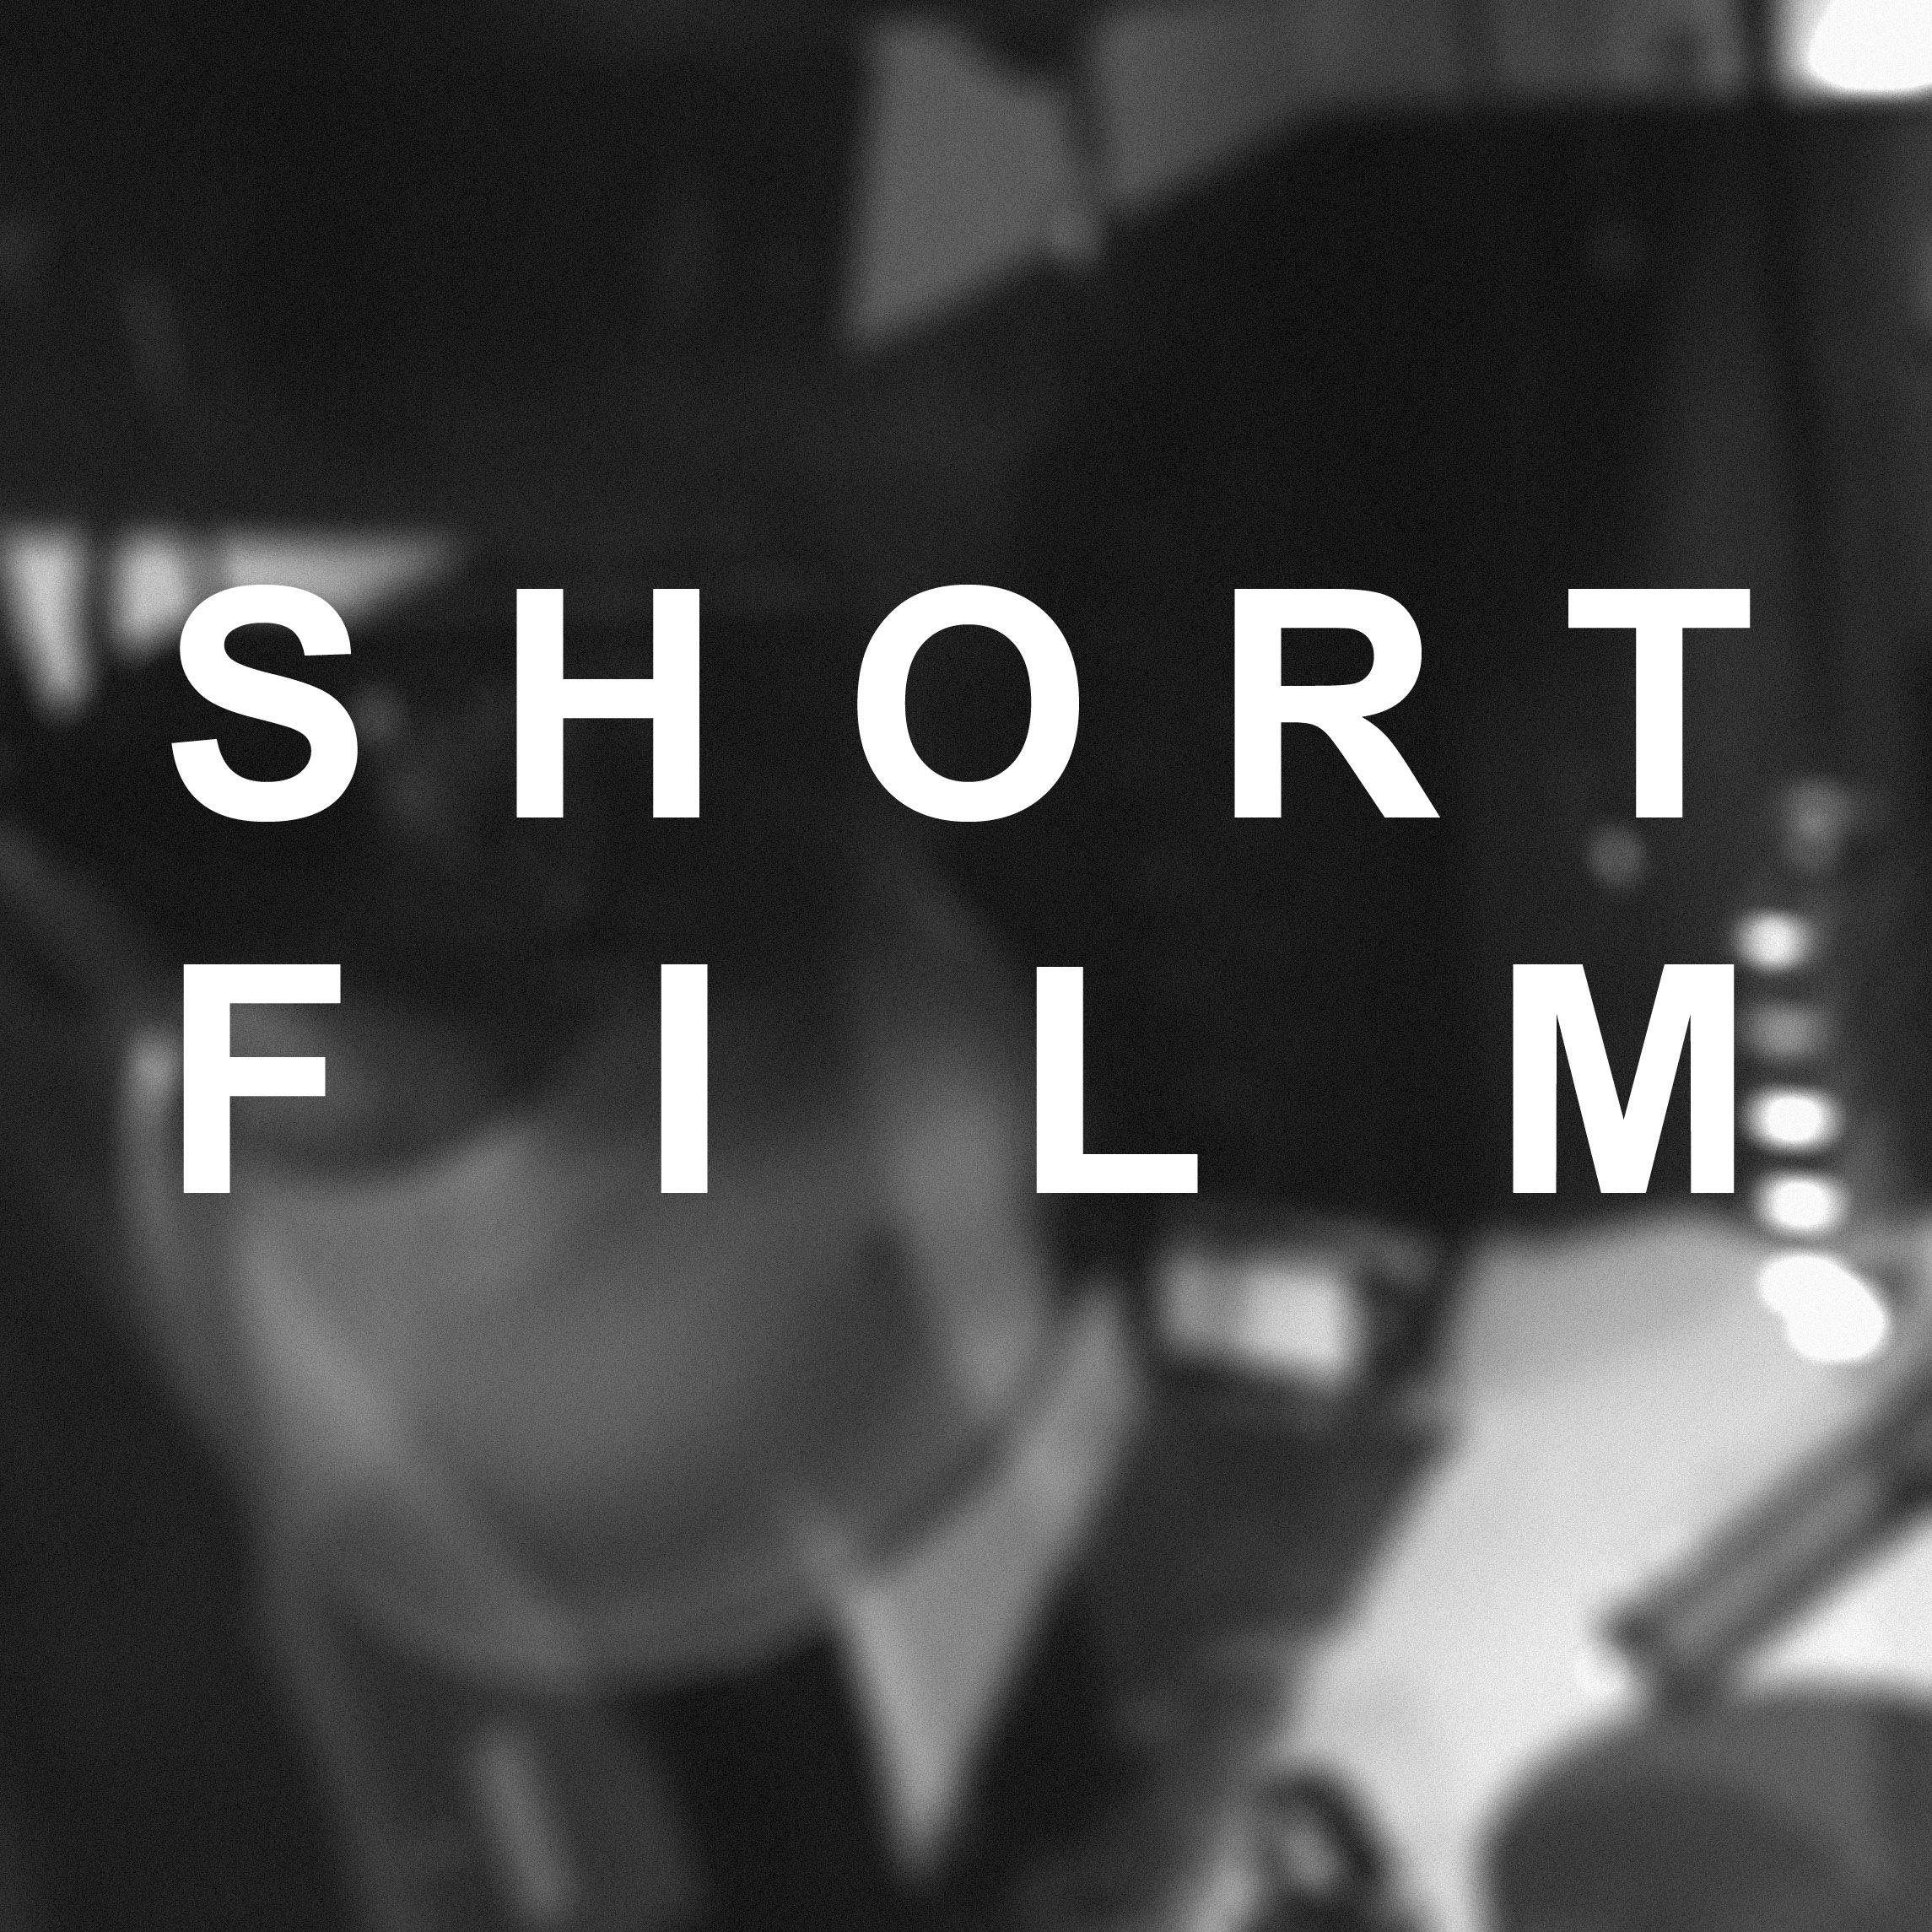 Short Film  Indiegogo. Midwest Basement Systems. When To Use A Dehumidifier In The Basement. Binding Of Isaac Basement Theme. Why Are There No Basements In Texas. How To Rid Musty Smell In Basement. 1 Bedroom Basement Apartments For Rent In Scarborough. Basement Building Regulations. Pittsburgh Scarehouse Basement